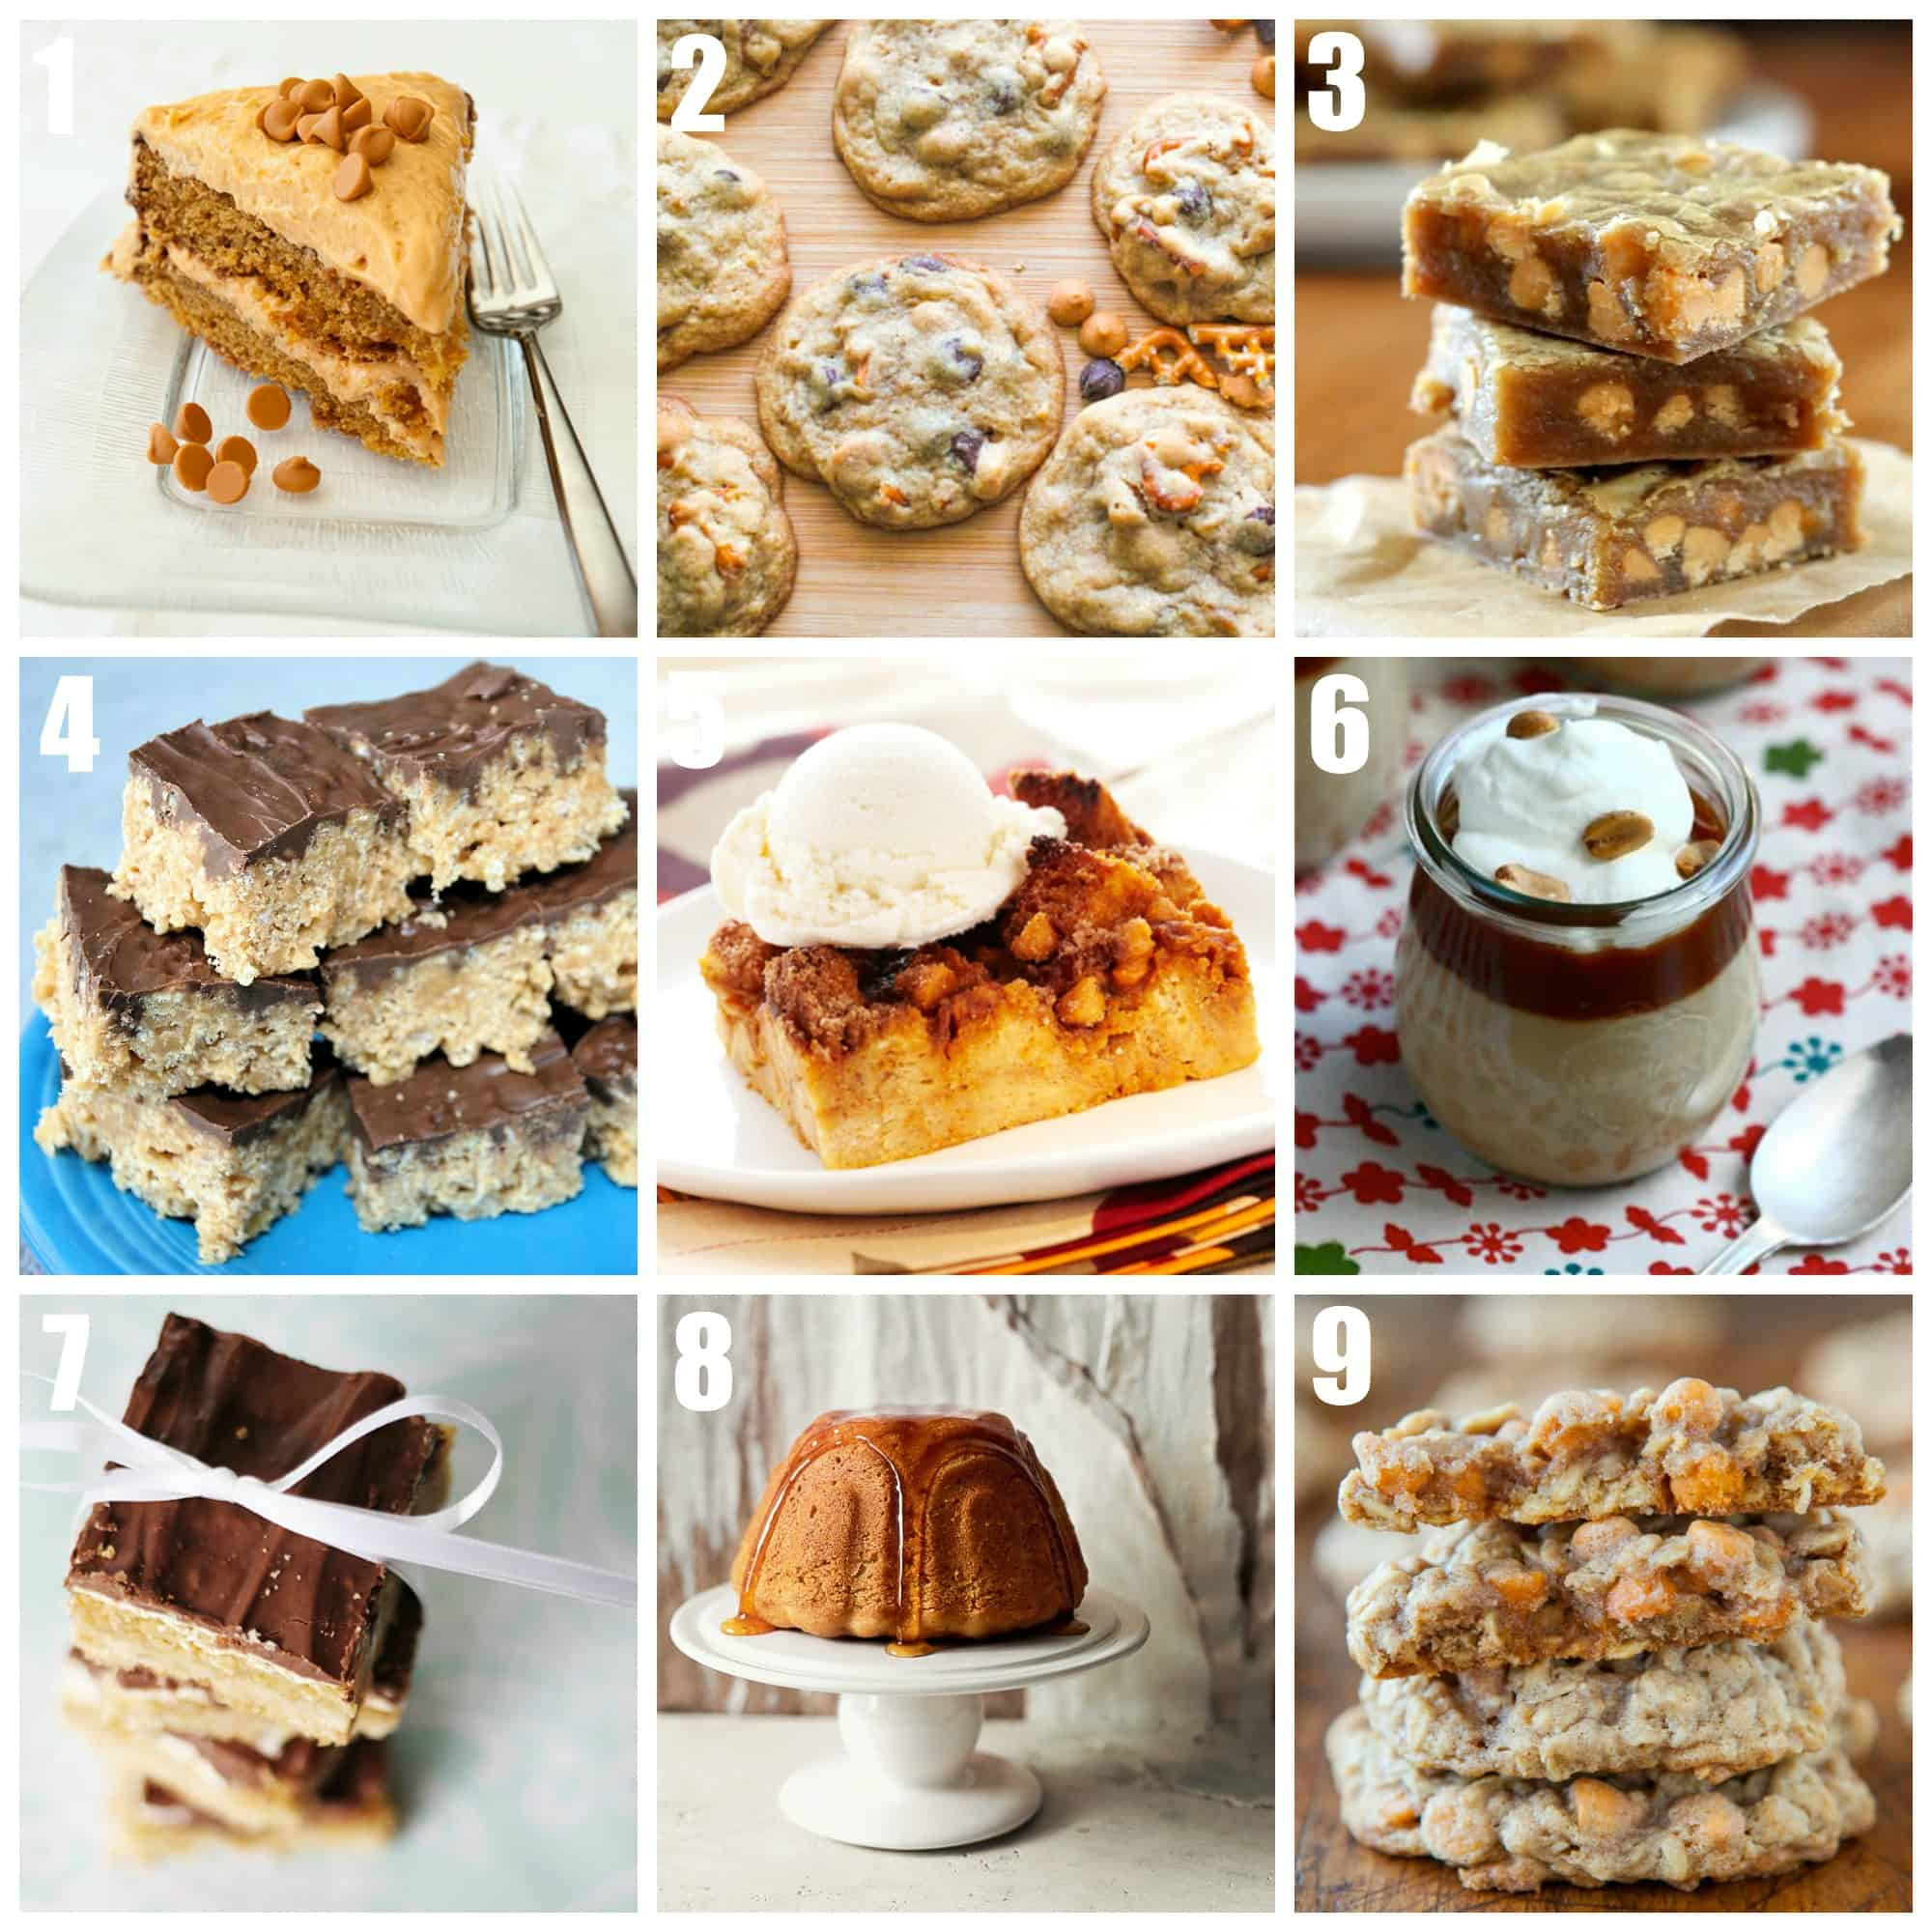 Butterscotch Recipes: sweet, chewy, and delicious desserts